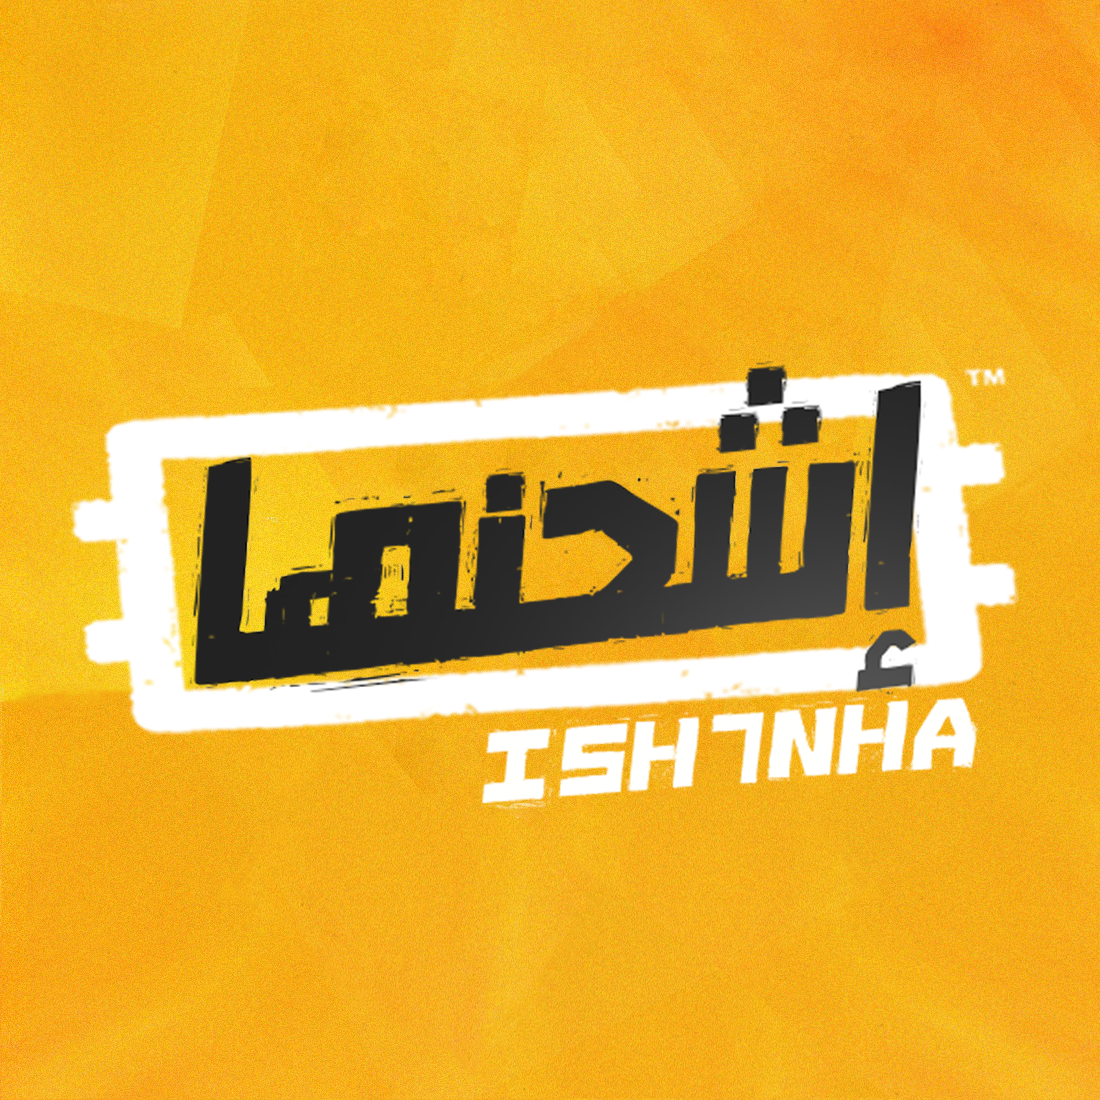 إشحنها